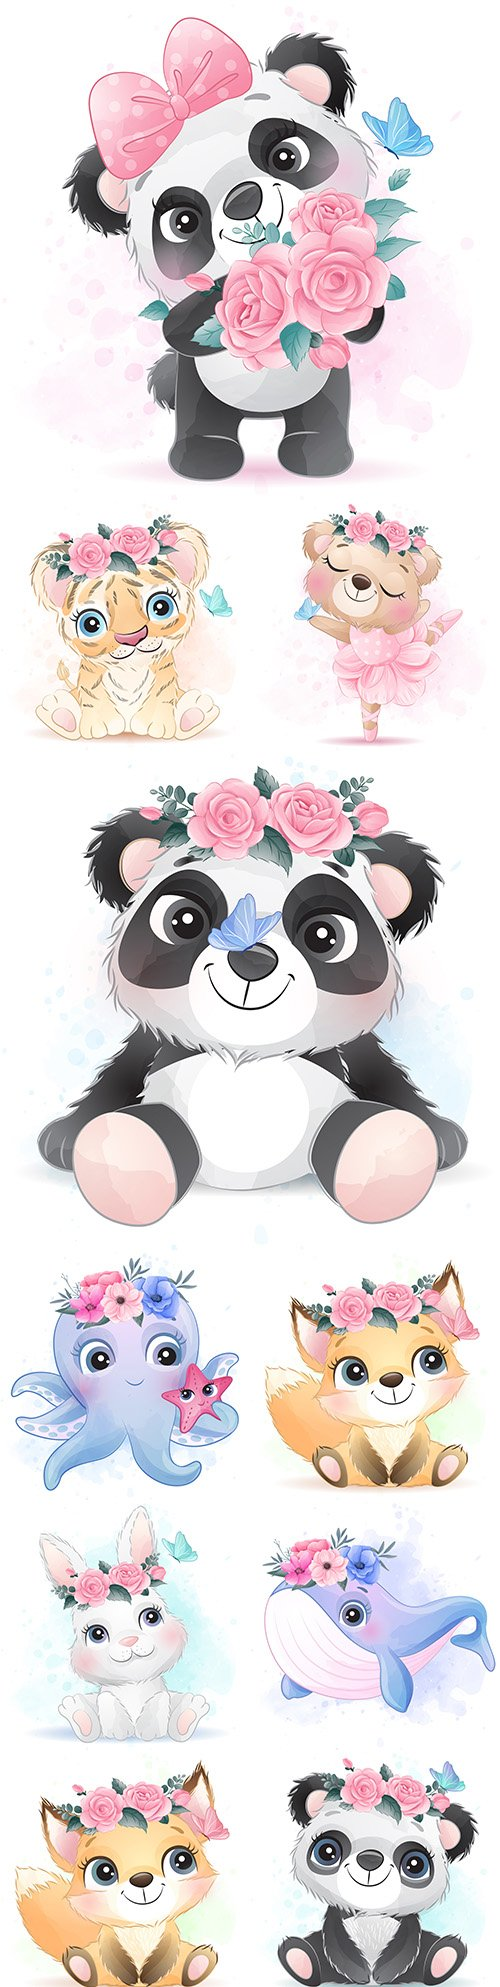 Cute panda, fox and other animals with flowers